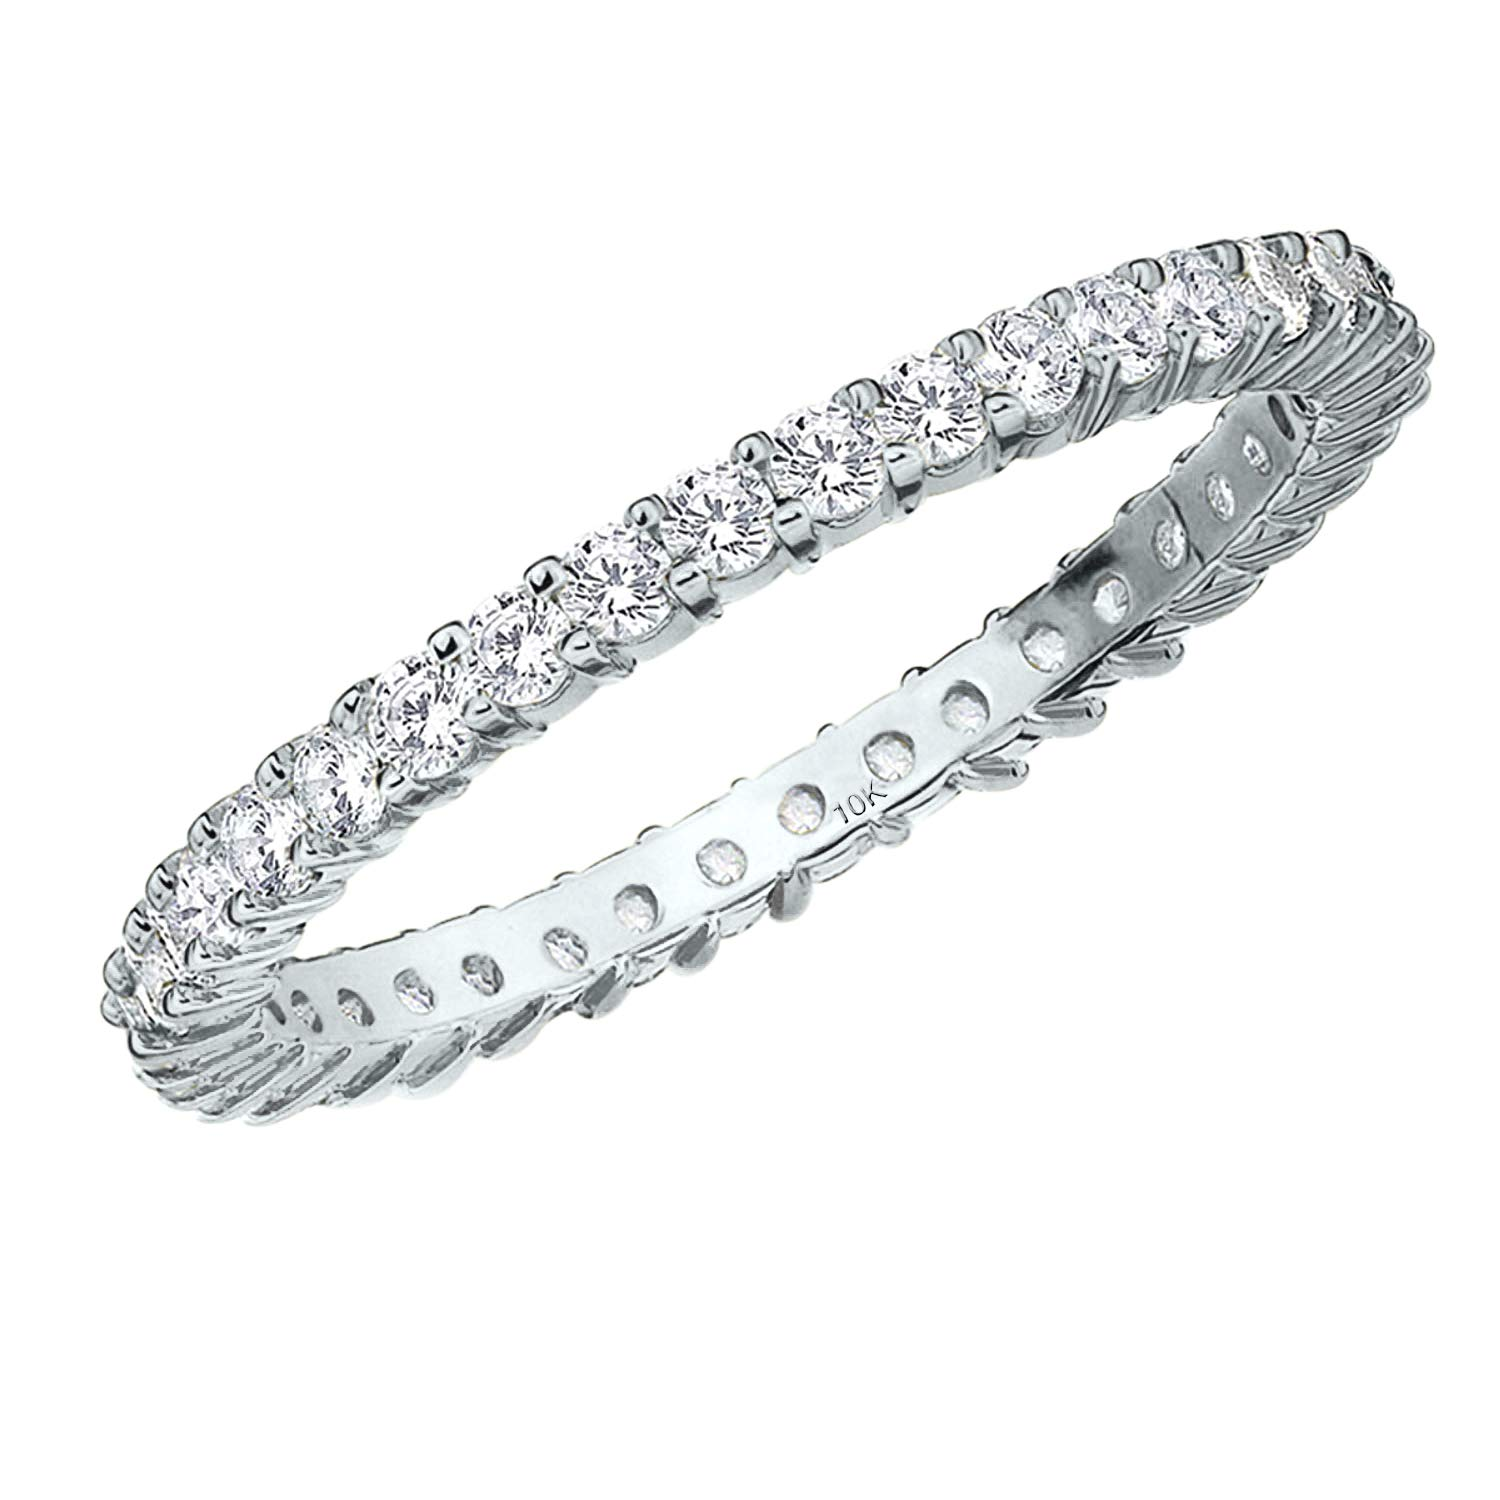 .50CT Passion Eternity Diamond Ring in 10K White Gold Shared Prong Setting - Finger Size 10